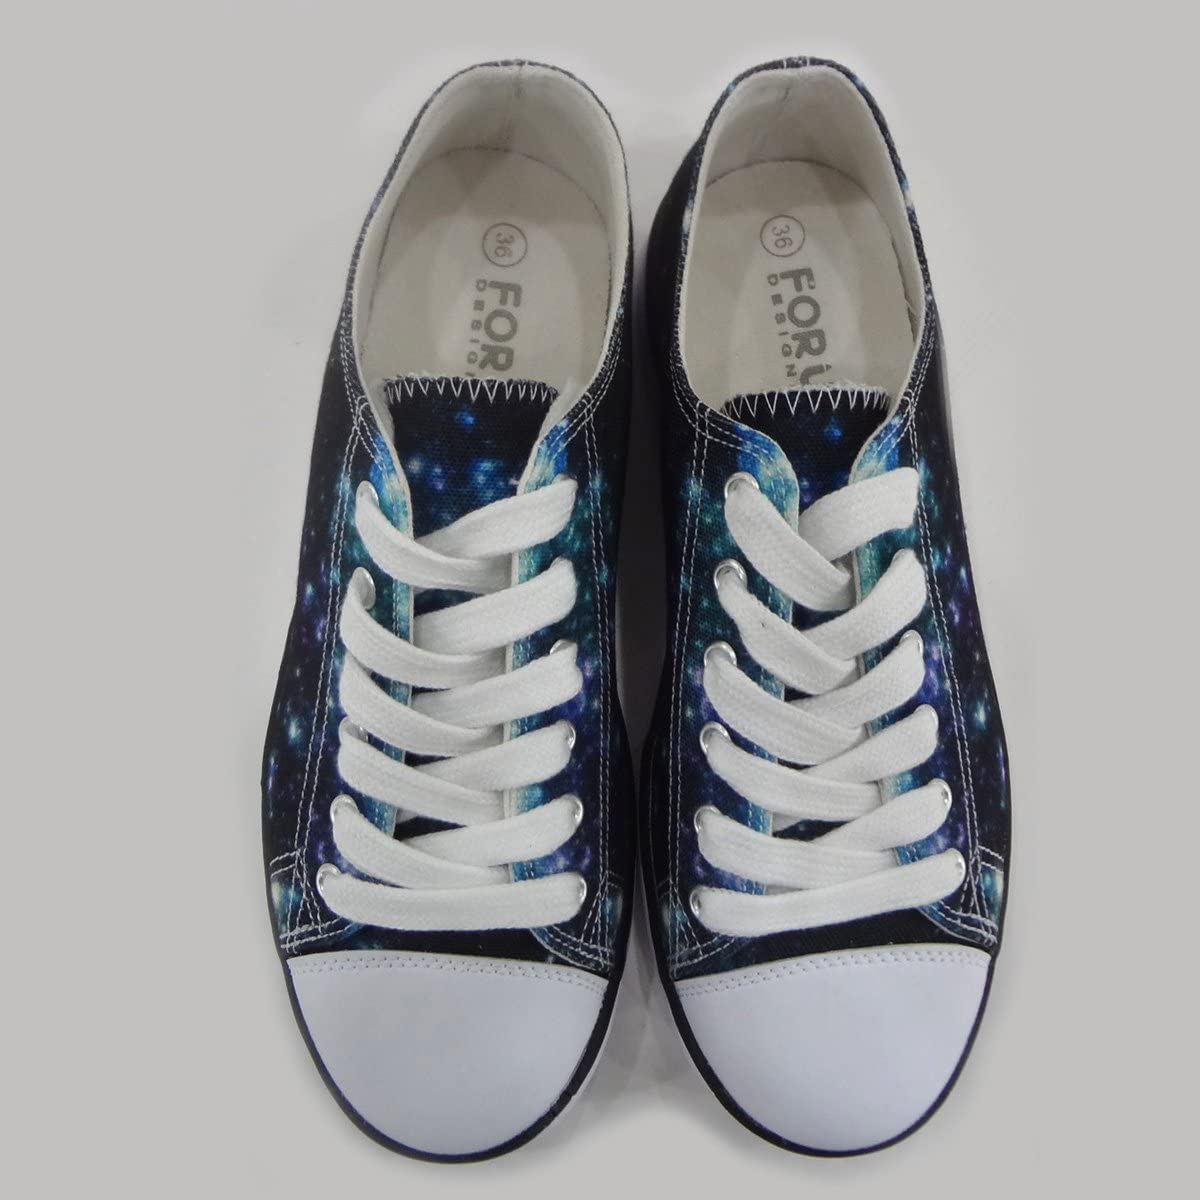 Freewander Stylish Low Top Sneaker Shoes for Teens Girls